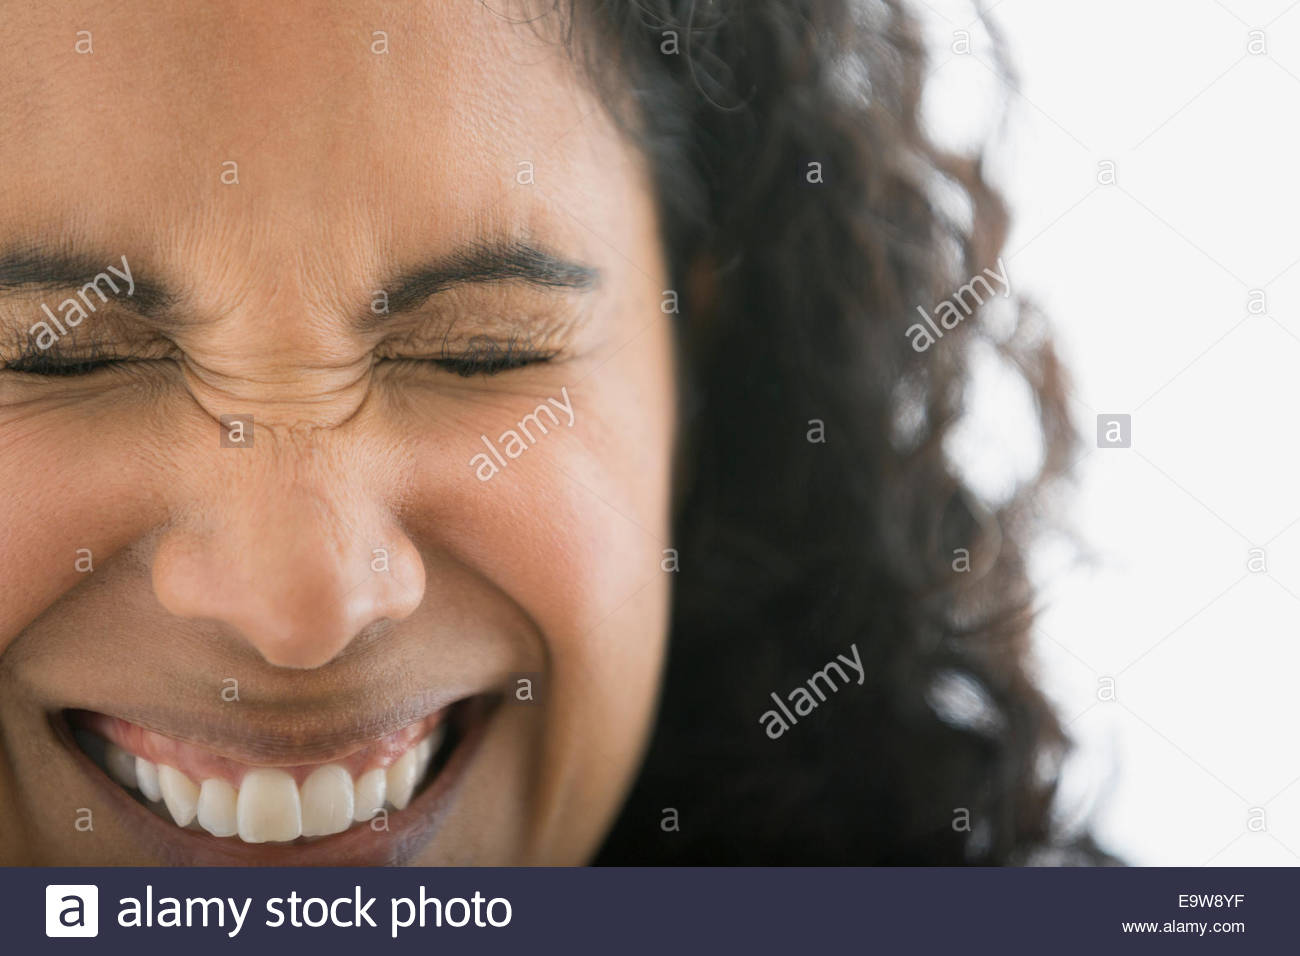 Close up portrait of smiling woman squinting - Stock Image